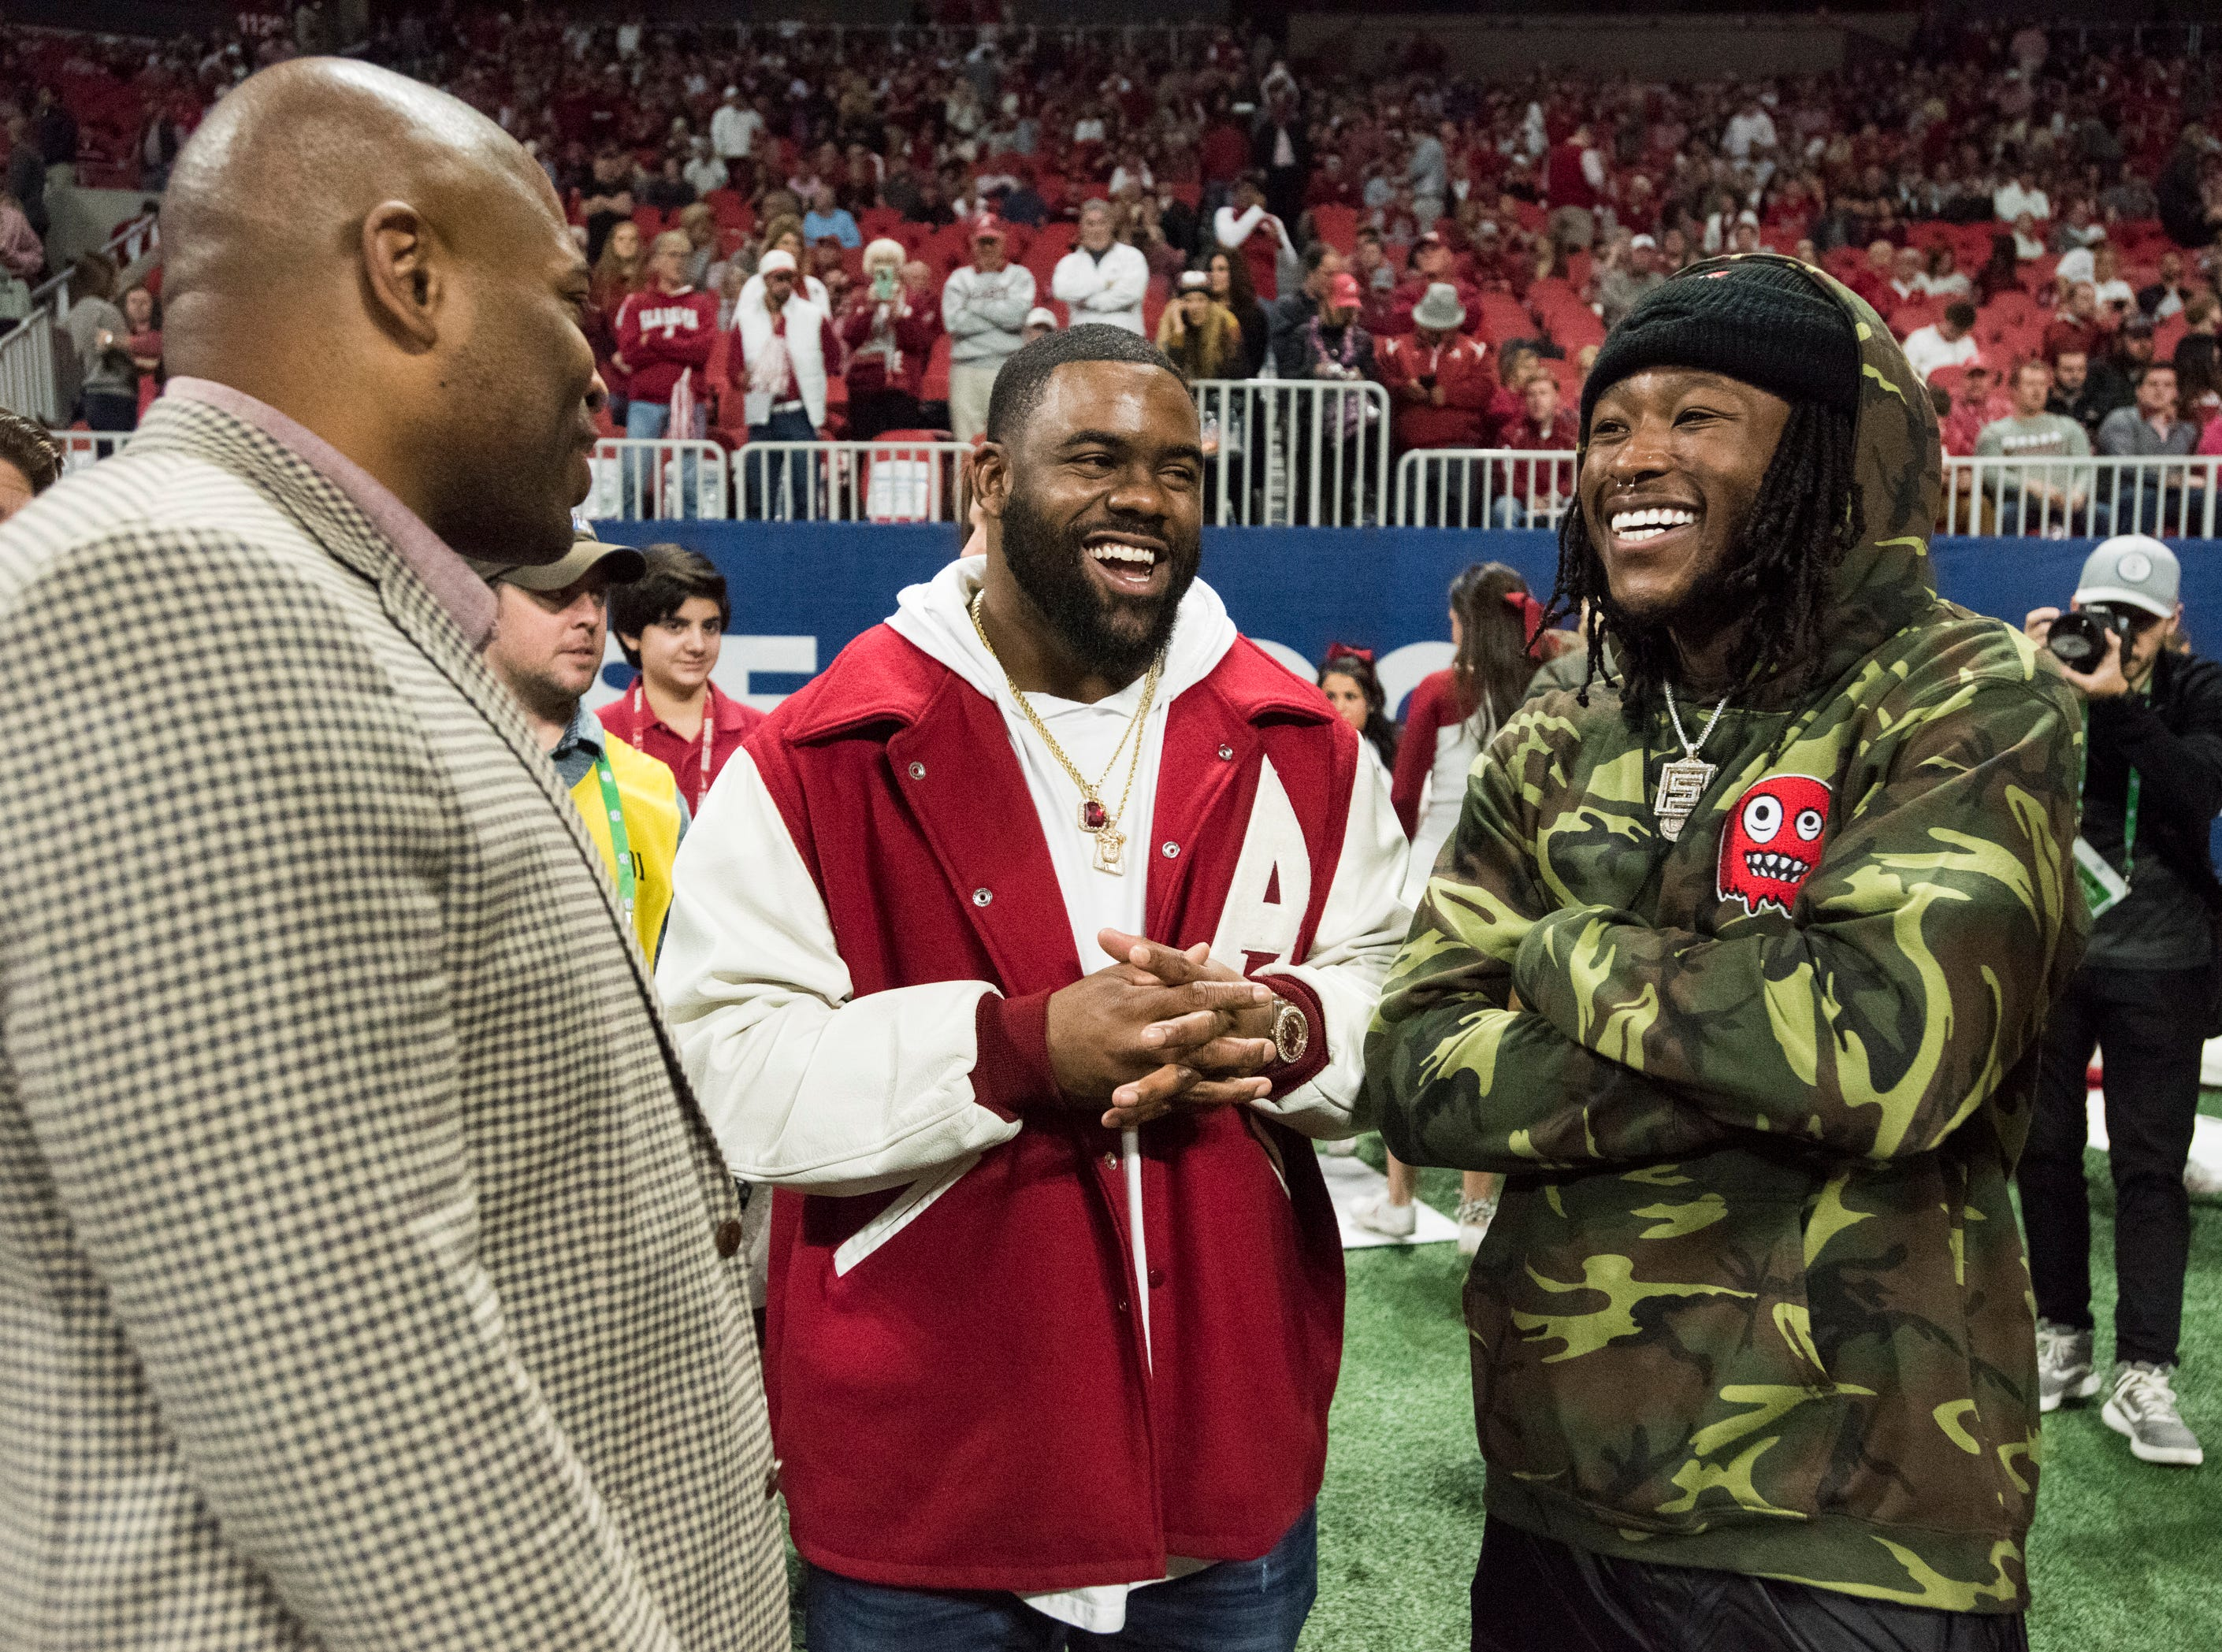 Former Alabama running backs Shaun Alexander, Mark Ingram and Alvin Kamara chat on the sidelines during warm ups before the SEC Championship game at Mercedes-Benz Stadium in Atlanta, Ga., on Saturday Dec. 1, 2018.